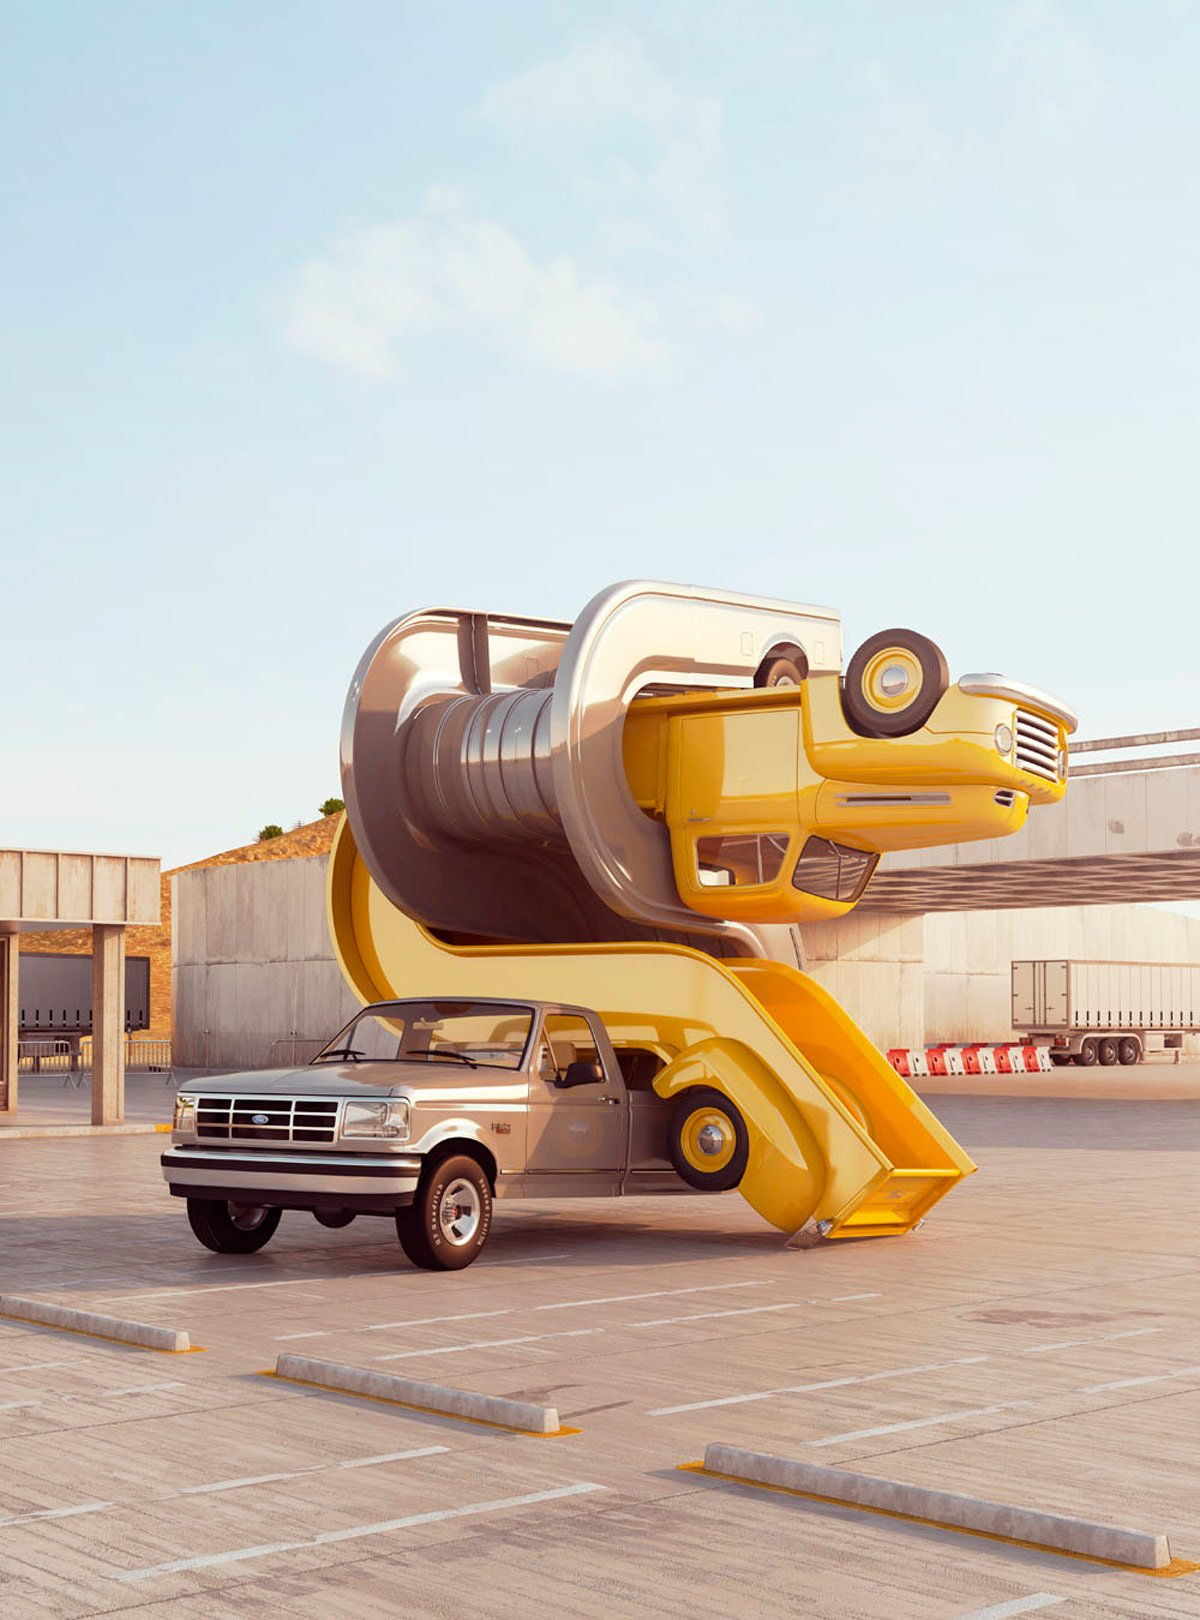 tales-of-auto-elasticity-rendered-photographs-by-chris-labrooy-4